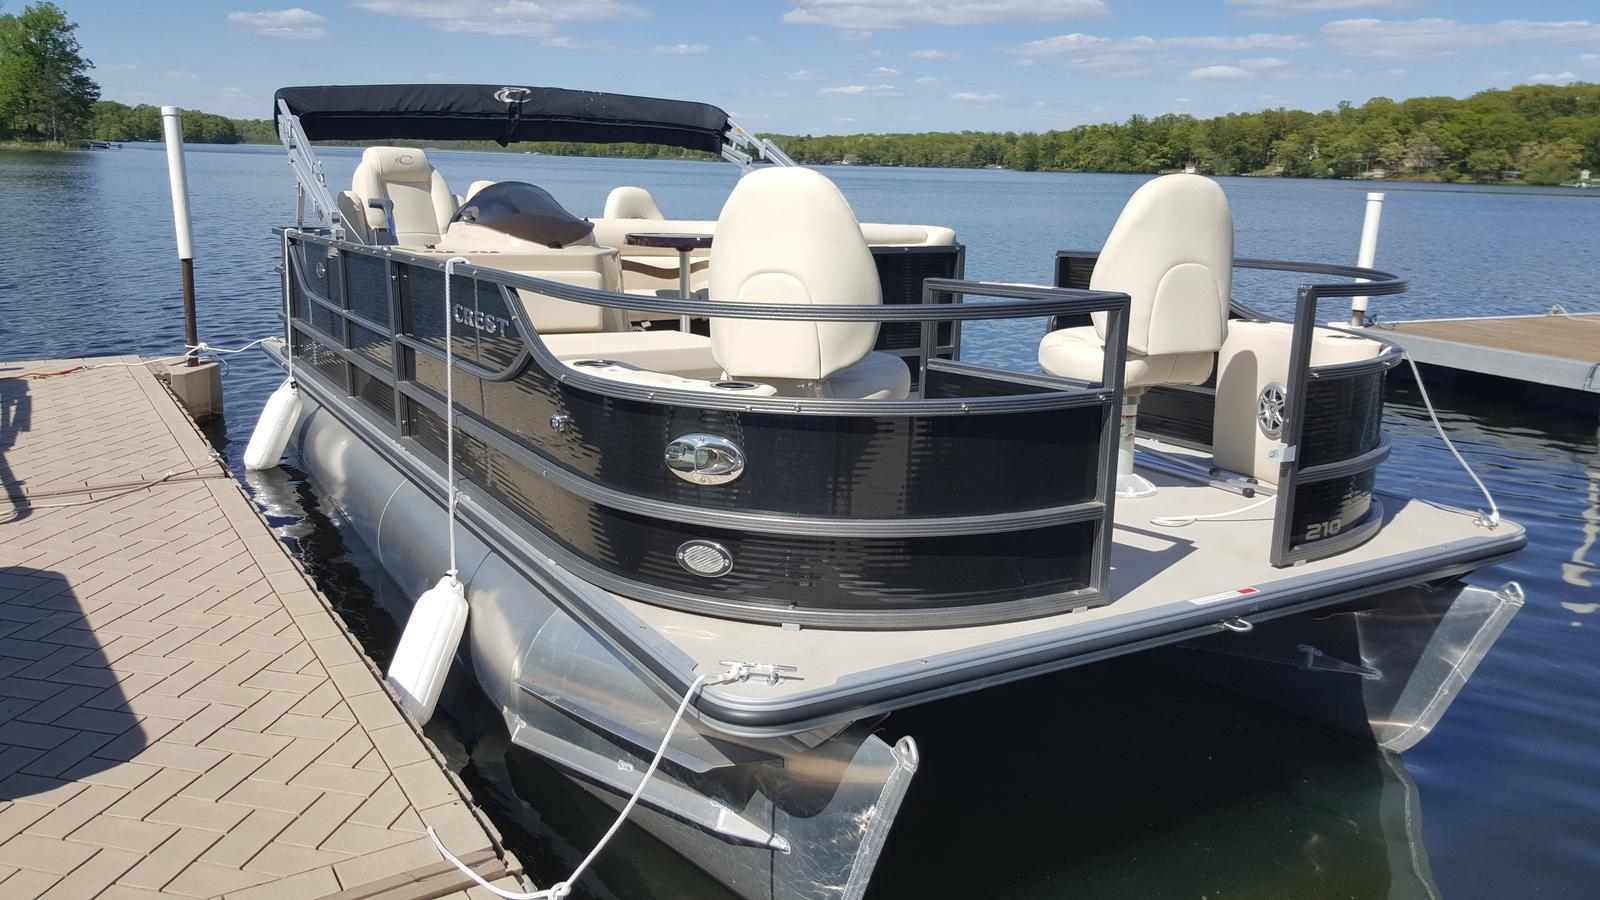 Boat and pontoon rentals sunnyside marina balsam lake wi for Wisconsin fishing resorts with boat rentals